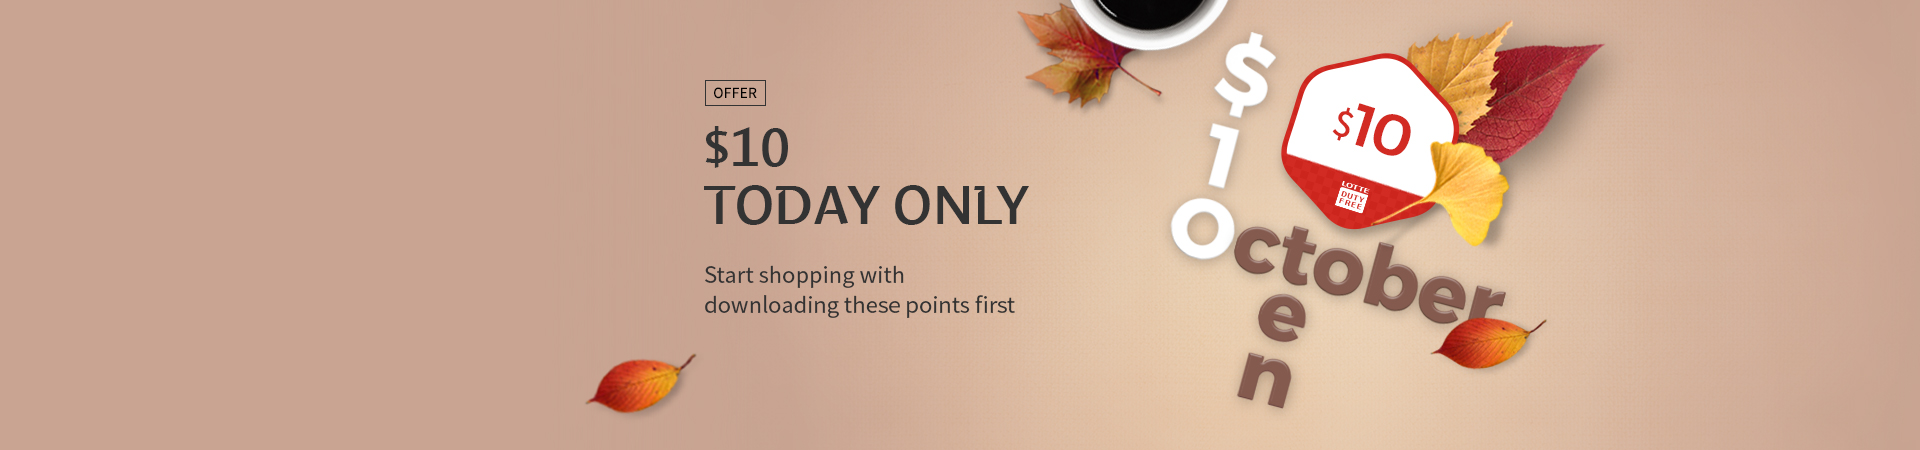 10/19 Today Only! $10 Reward points